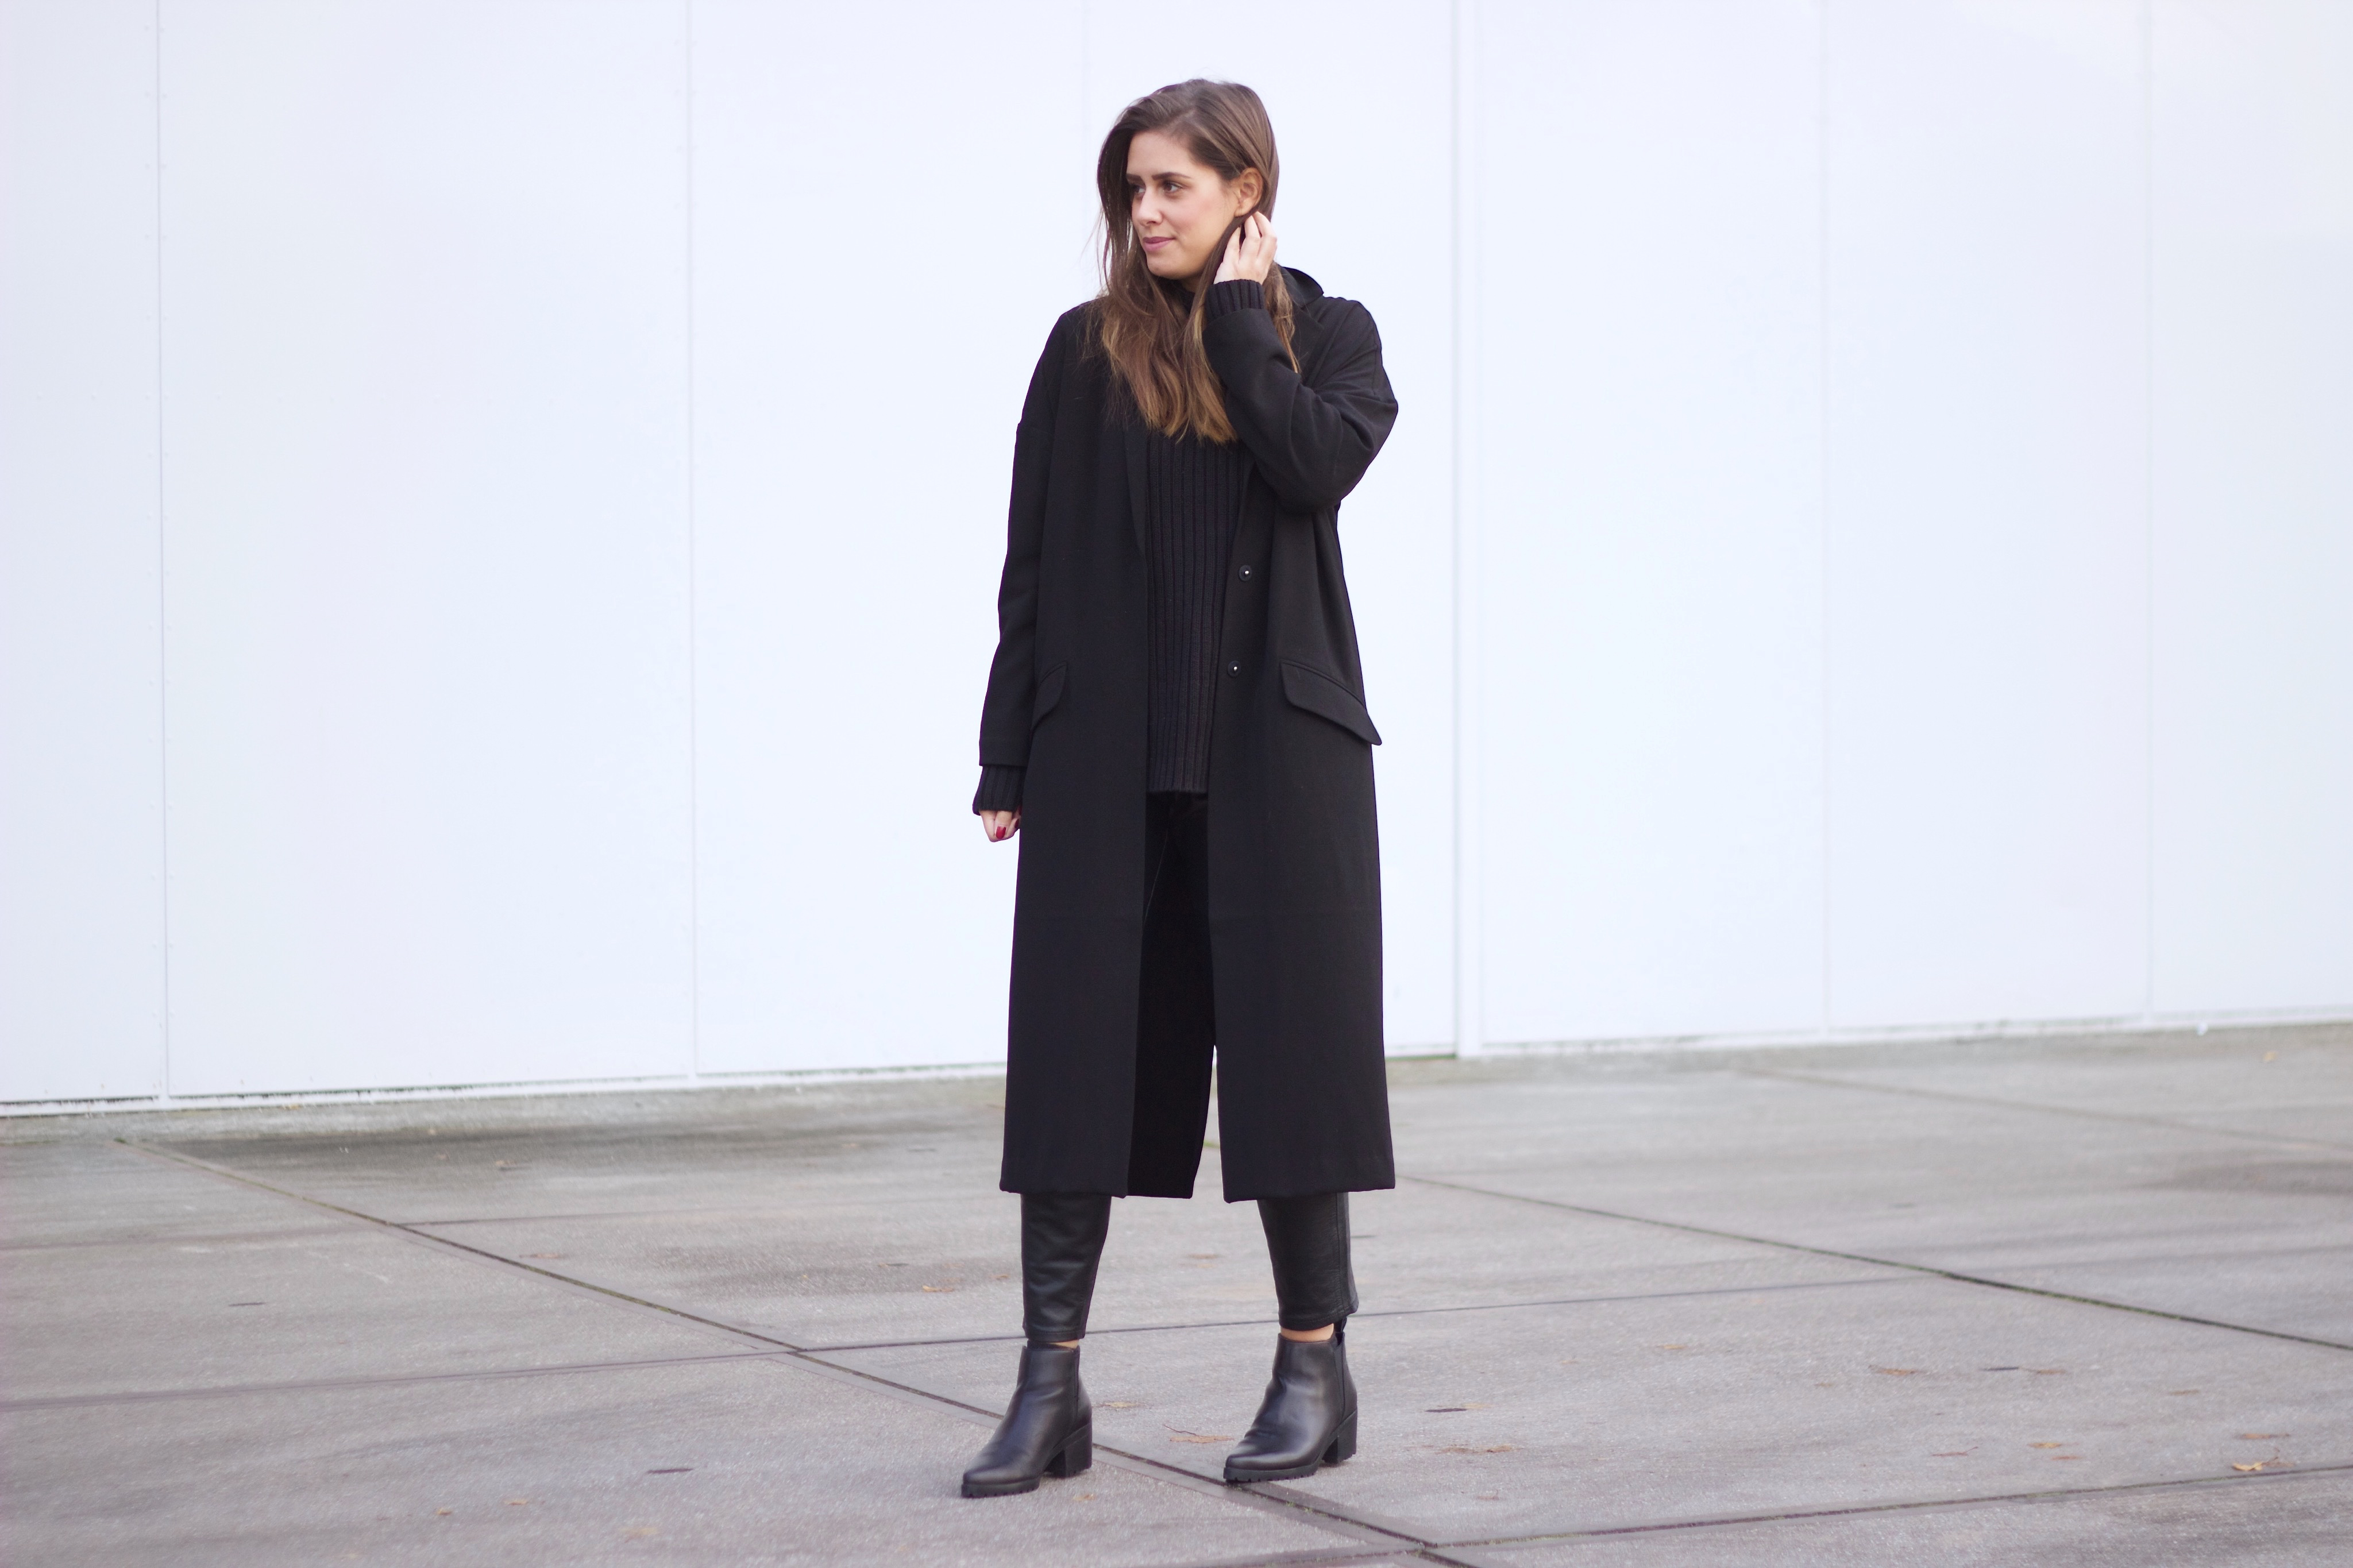 Leather-trousers-duster-coat-asos-street-style